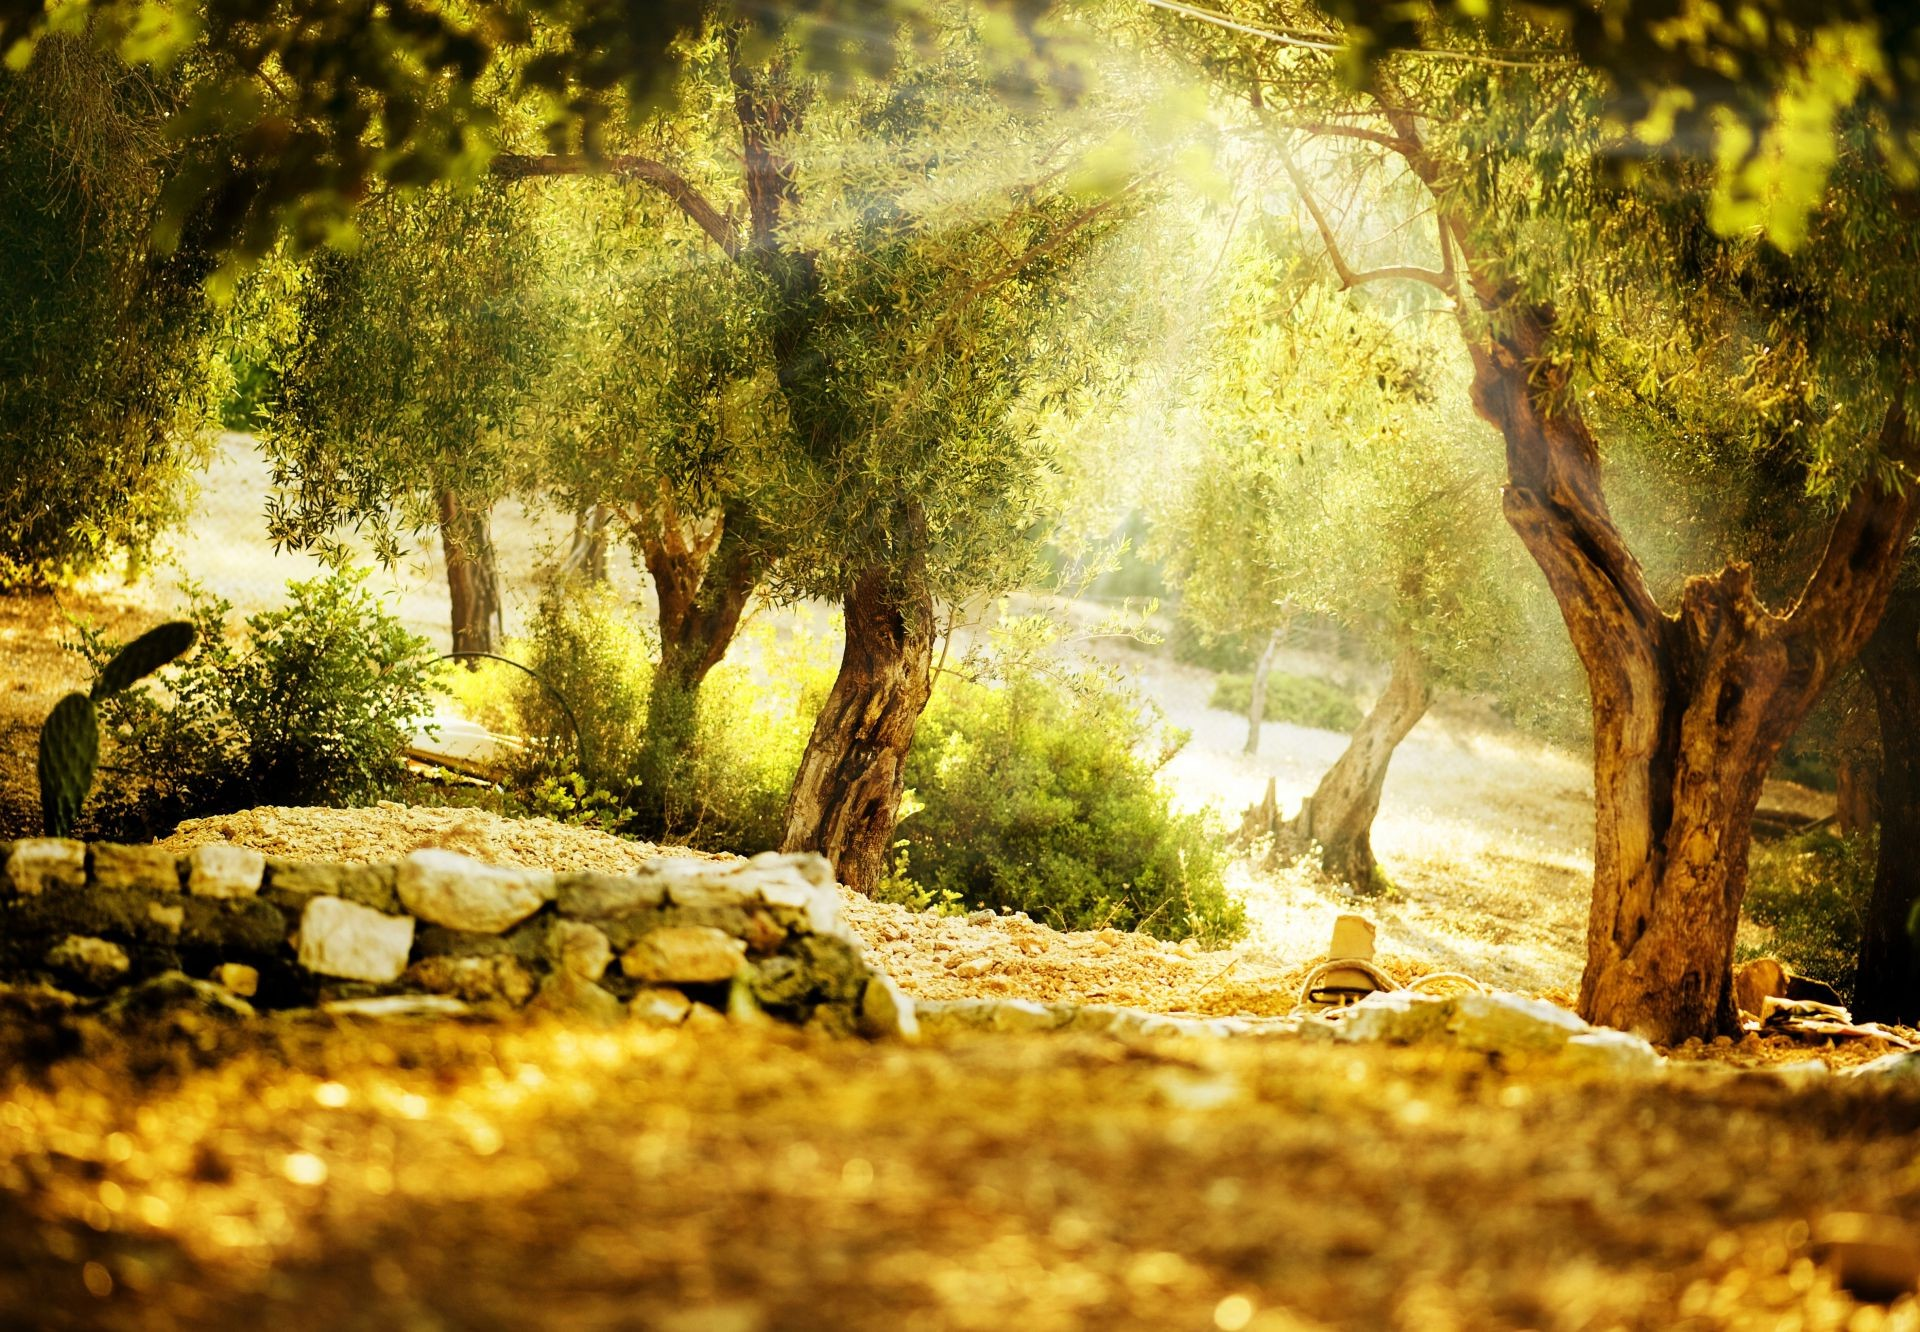 the sunlight and rays wood nature tree landscape fall leaf outdoors park water scenic travel environment summer flora fair weather moss